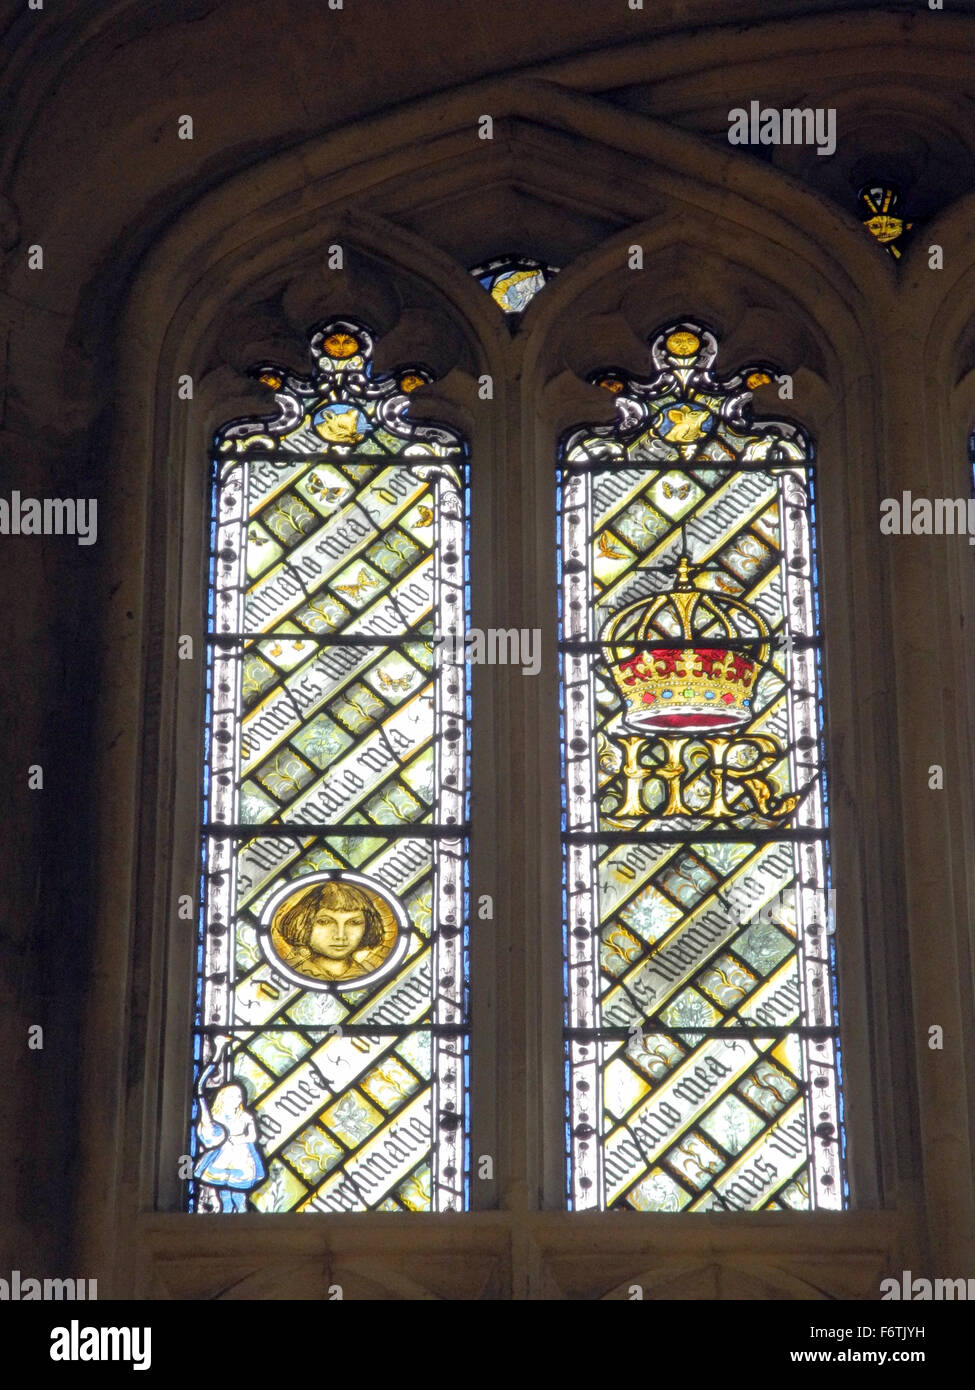 Oxford, Britain. 21st Oct, 2015. Windows consisting of multiple components featuring various motifs from 'Alice - Stock Image